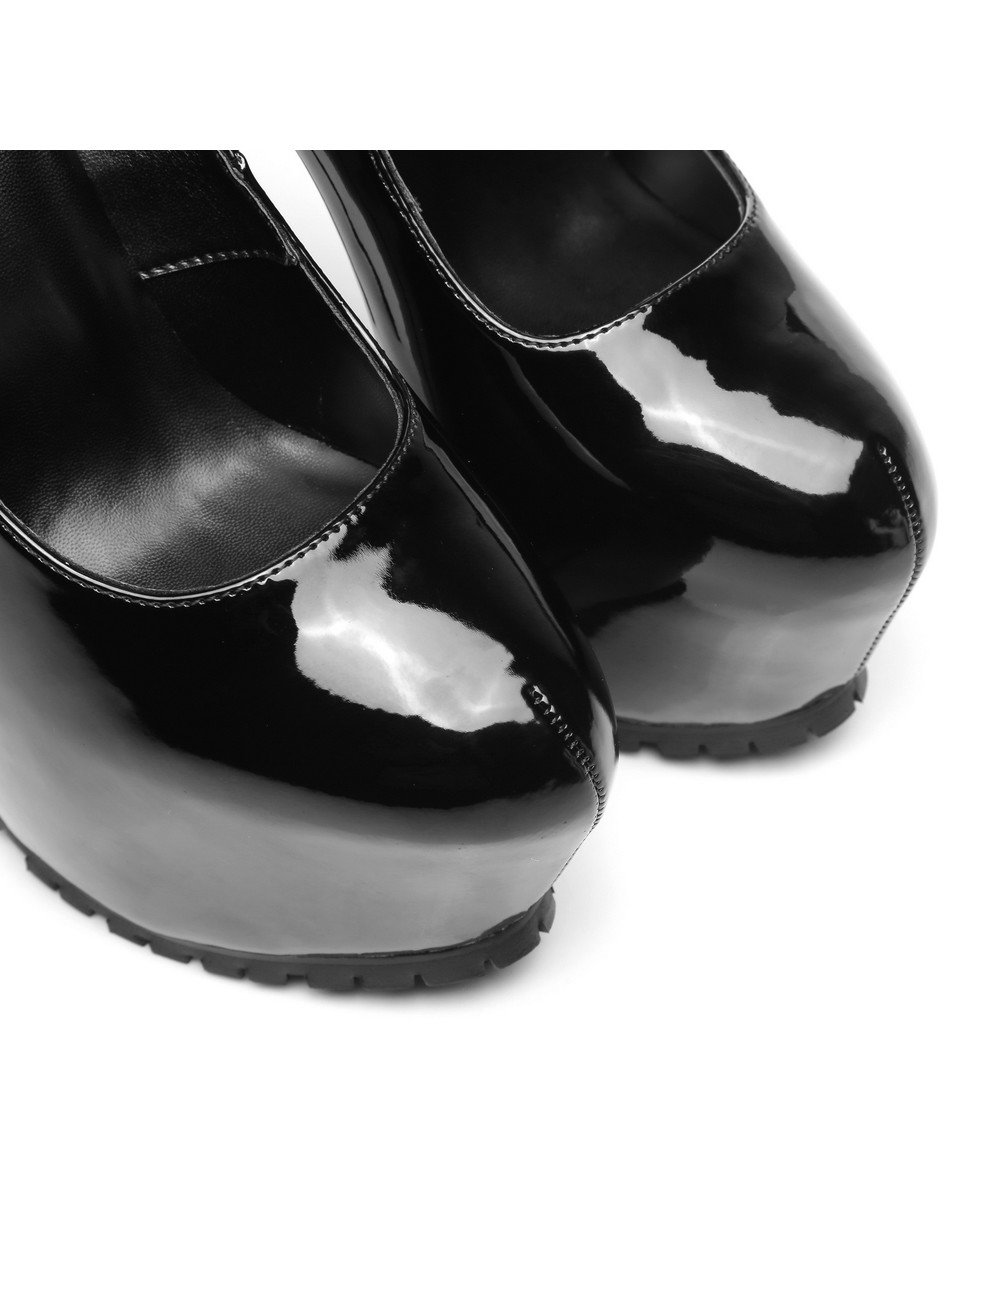 "Giaro Black shiny  Giaro ""Profile"" platform pumps"